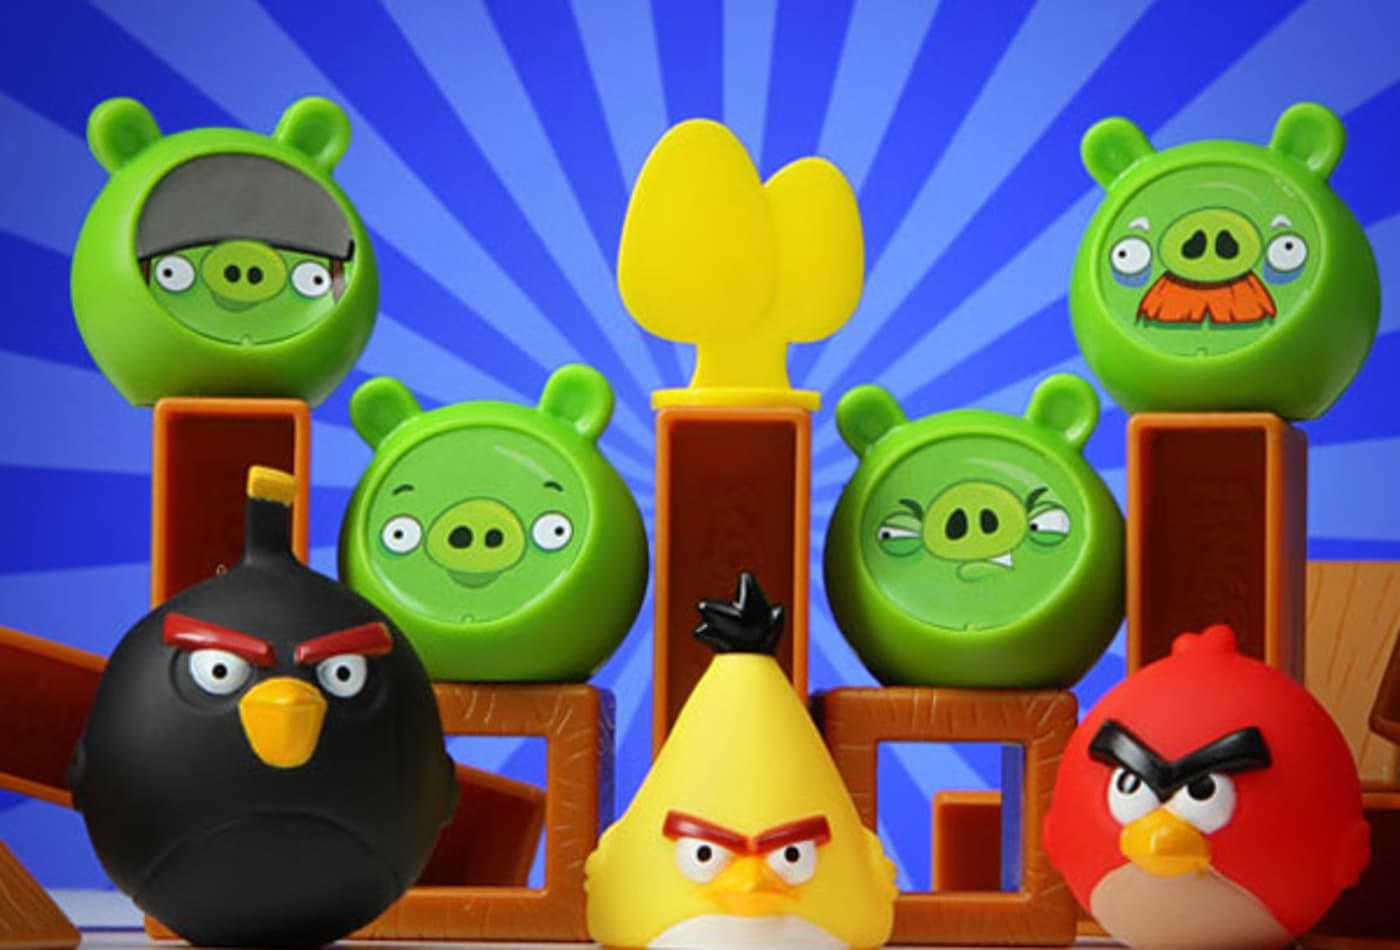 CNBC-toys-angry-birds-game.jpg